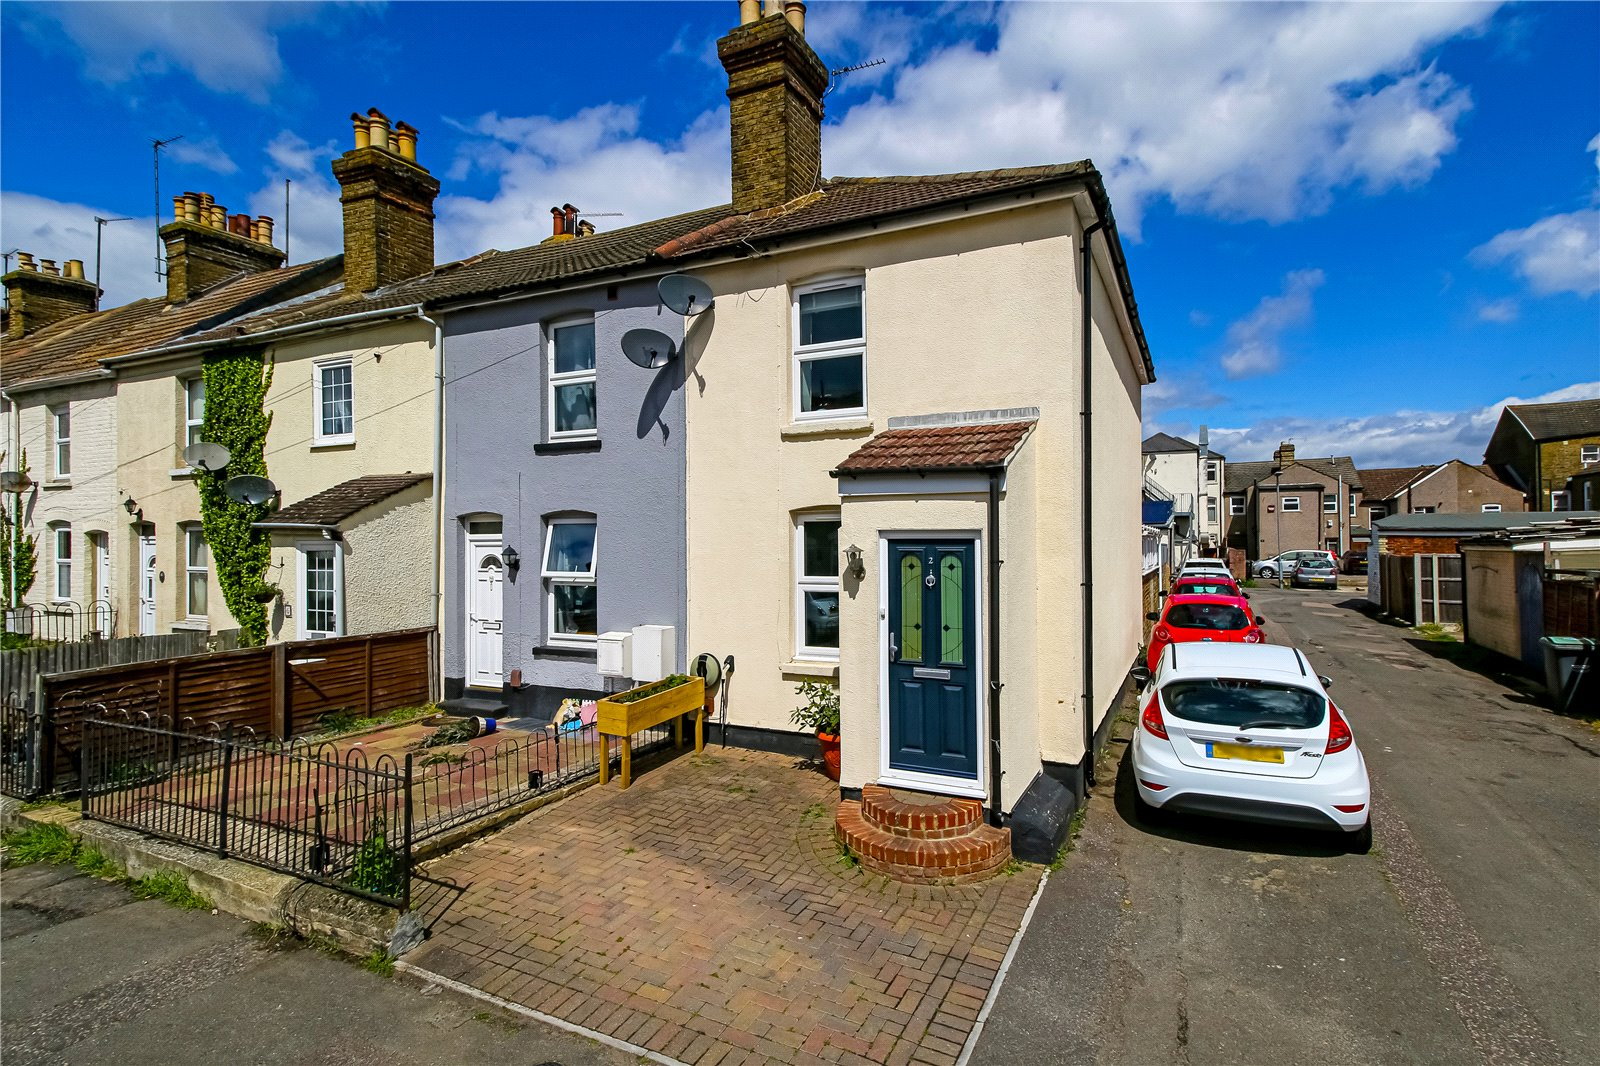 3 bed house for sale in Portland Place, Snodland, ME6